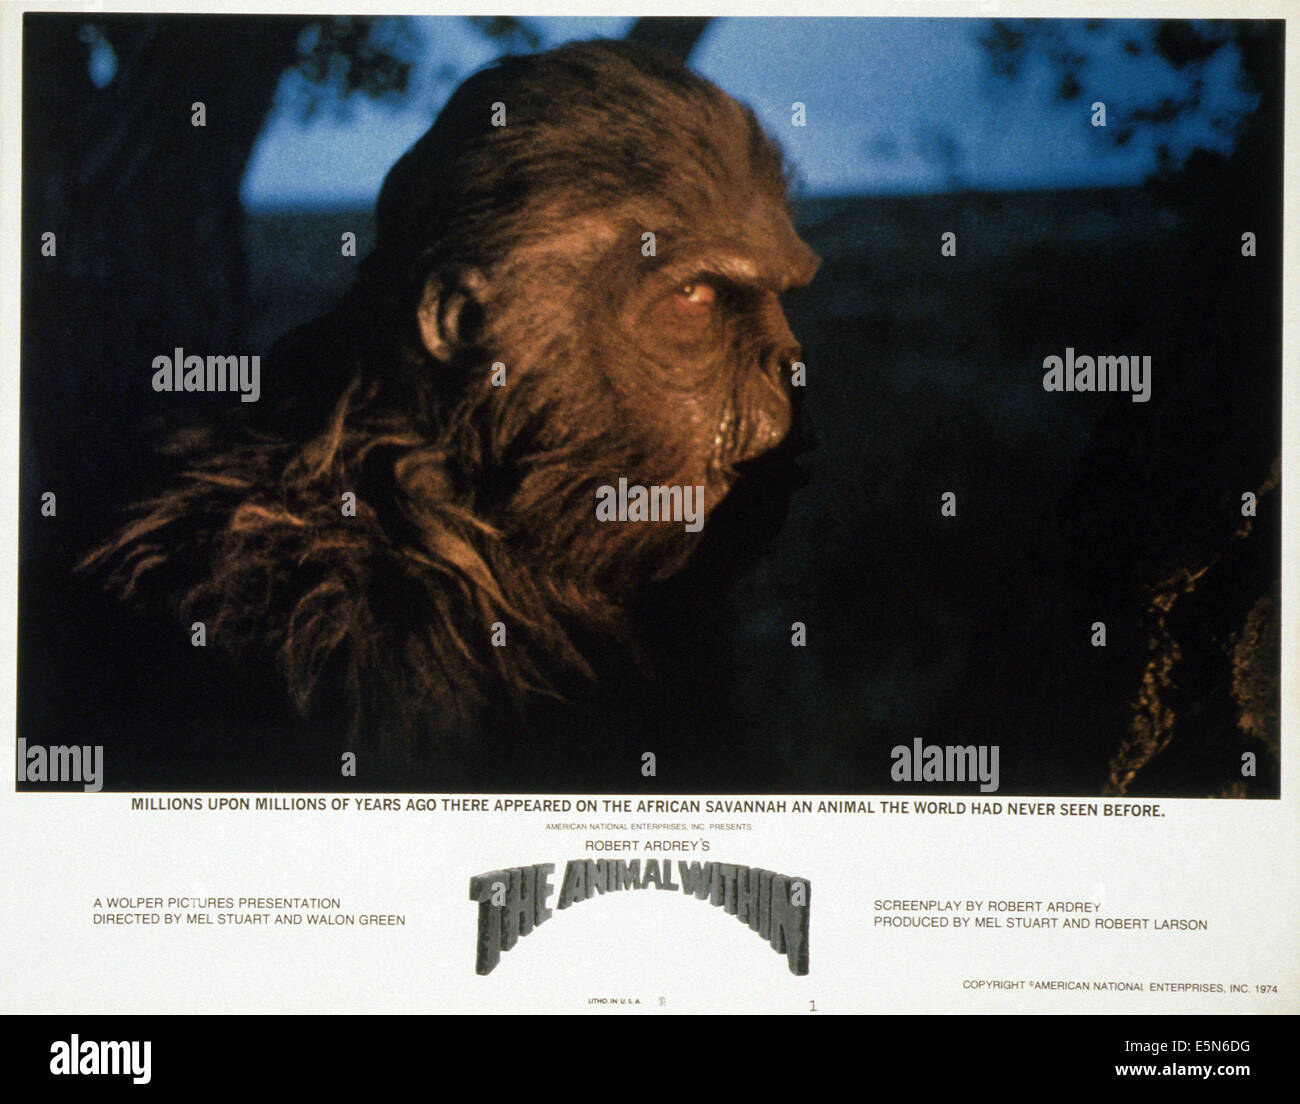 THE ANIMAL WITHIN, (aka UP FROM THE APE), 1974 - Stock Image